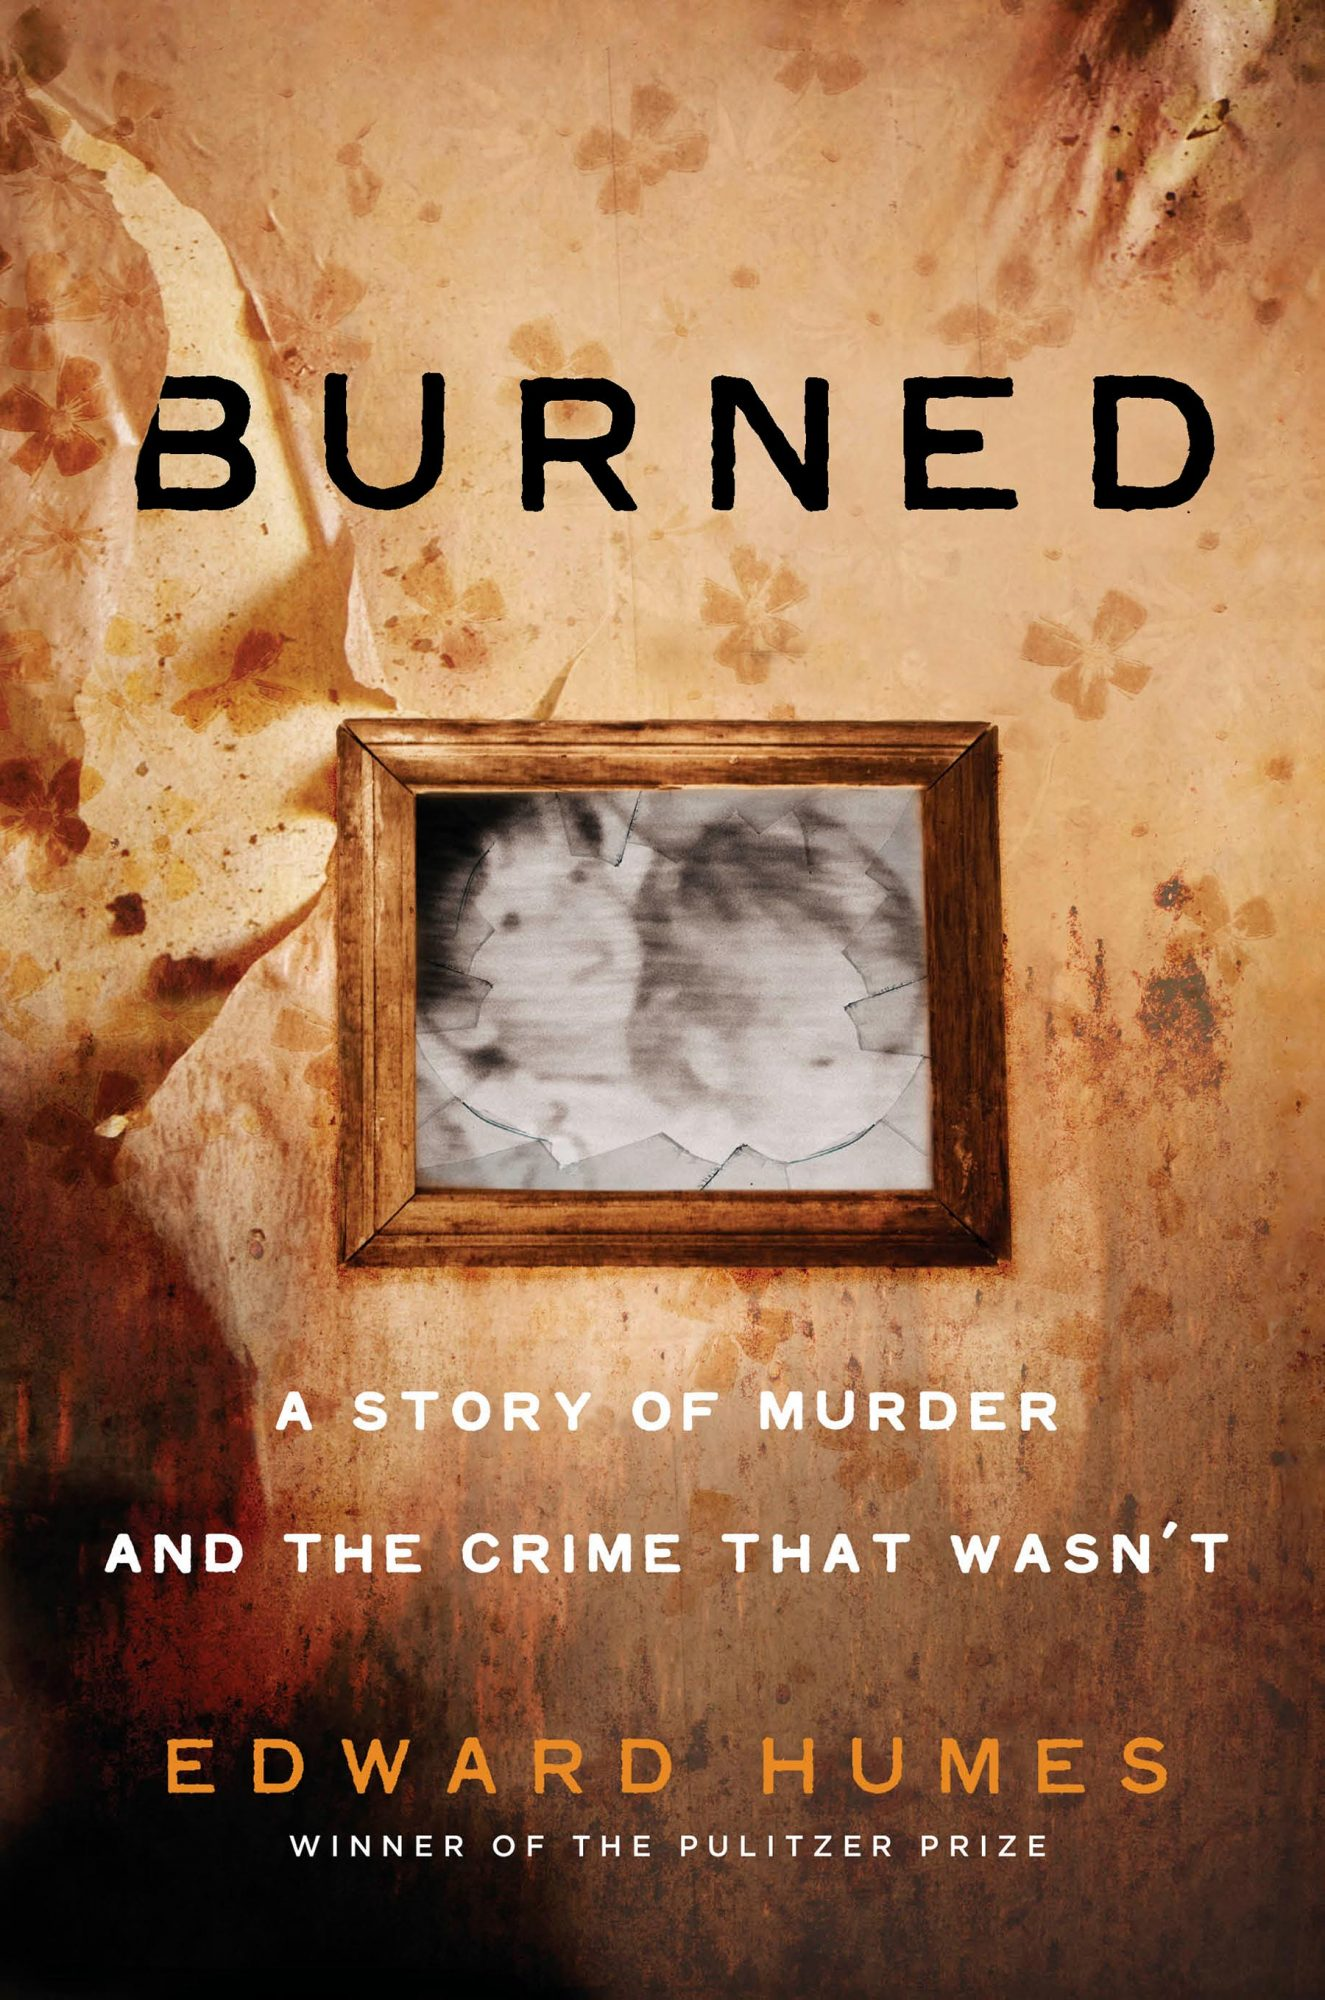 Burned, by Edward Humes